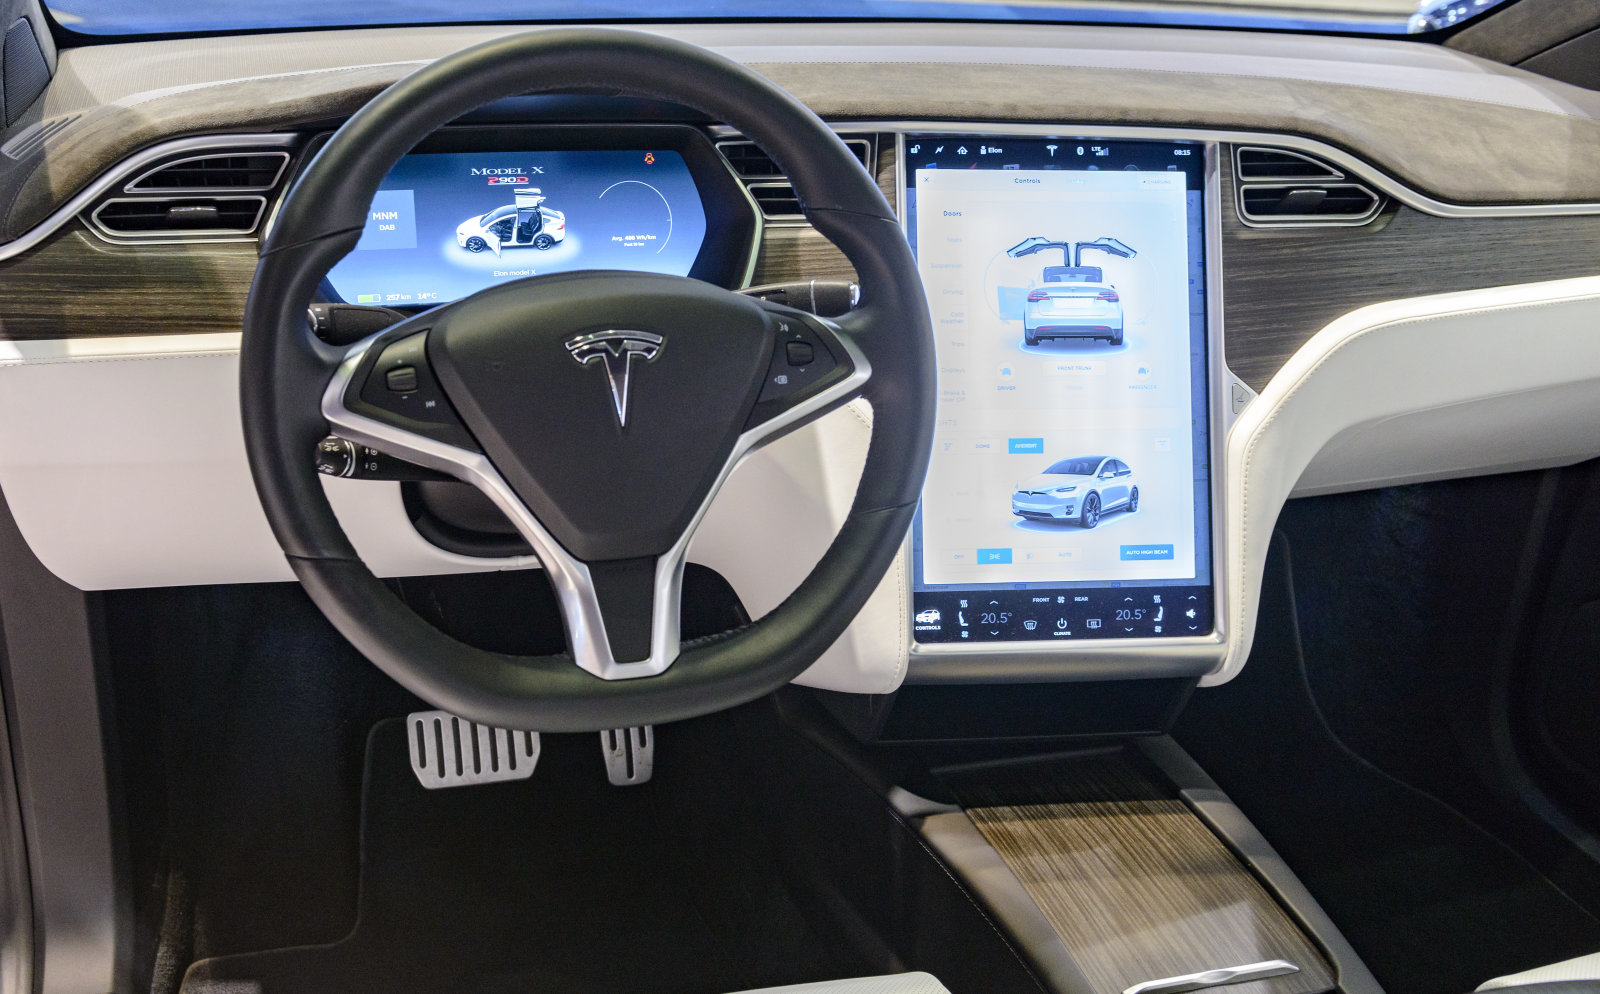 Brussels, Belgium - January 13, 2017: Luxurious interior on a Tesla Model X P90D full electric luxury crossover SUV car with a large touch screen and dashboard screen. The car is fitted with leather seats and aluminium details. The Model X uses falcon wing doors for access to the second and third row seats. The car is displayed on a motor show stand, with lights reflecting off of the body.